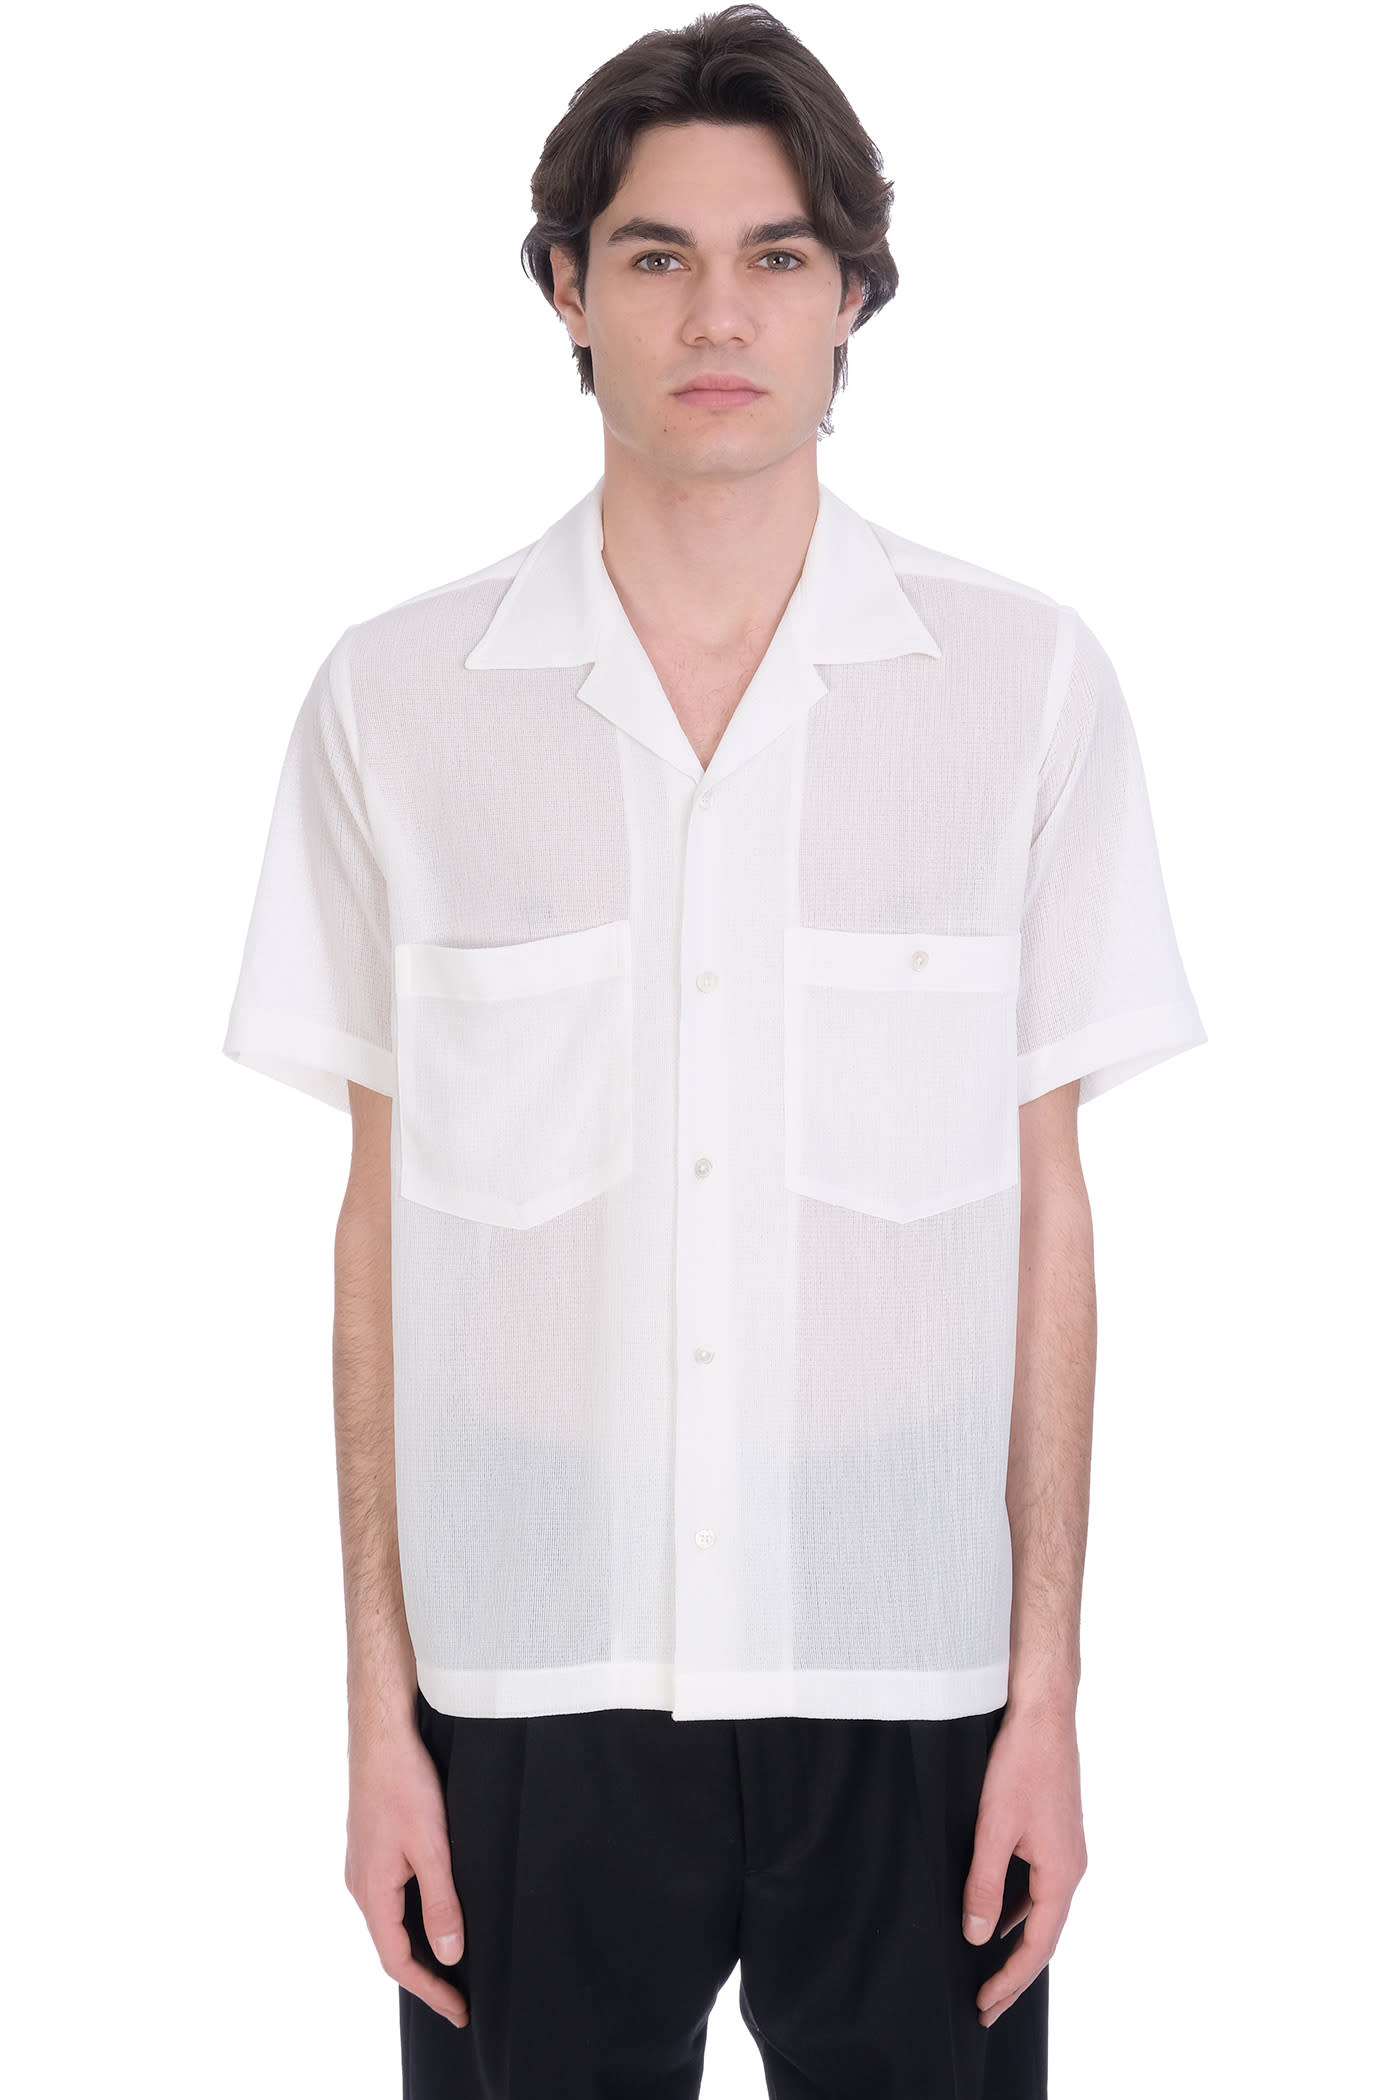 Shirt In White Polyester